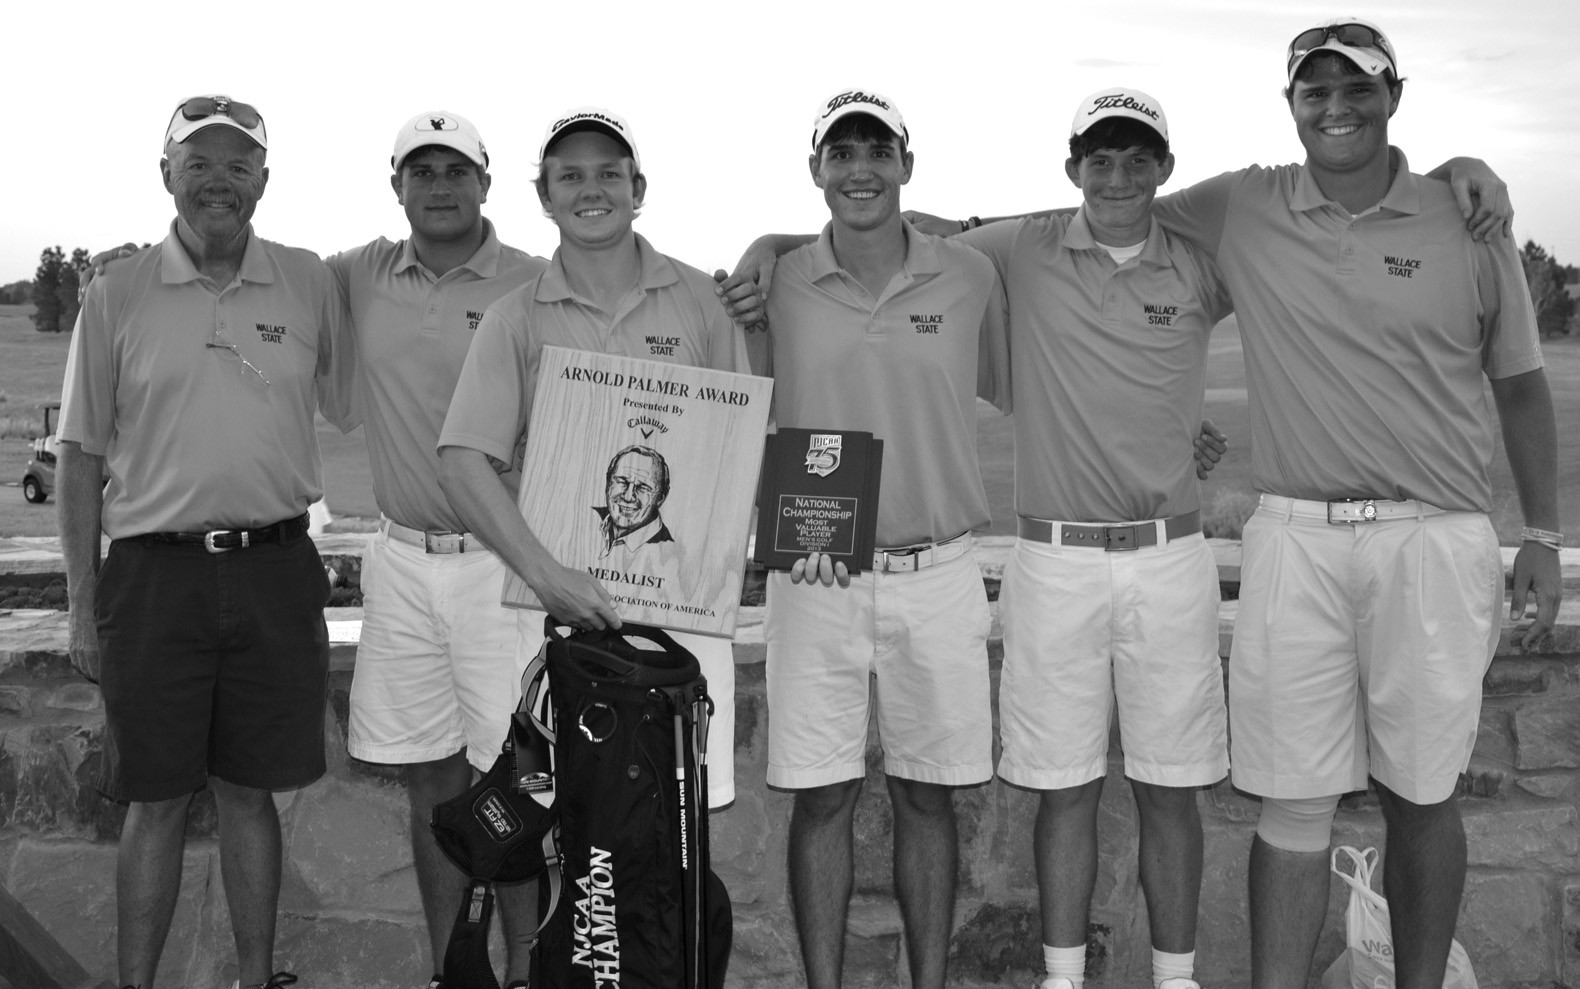 The Wallace State Community College golf team finished seventh at last month's national tournament in Lubbock, Texas. Wallace's Askel Olsen finished as the medalist with a total of 281 over the four rounds. Oneonta's Jake Miller shot a 291 to finish in a tie for 21st. The tournament was won by Central Alabama Community College. Pictured are (left to right) coach Dan York, Jake Miller, Askel Olsen, Michael Zierdt, Chris Atchley, and Patrick Twesme. – Rob Rice